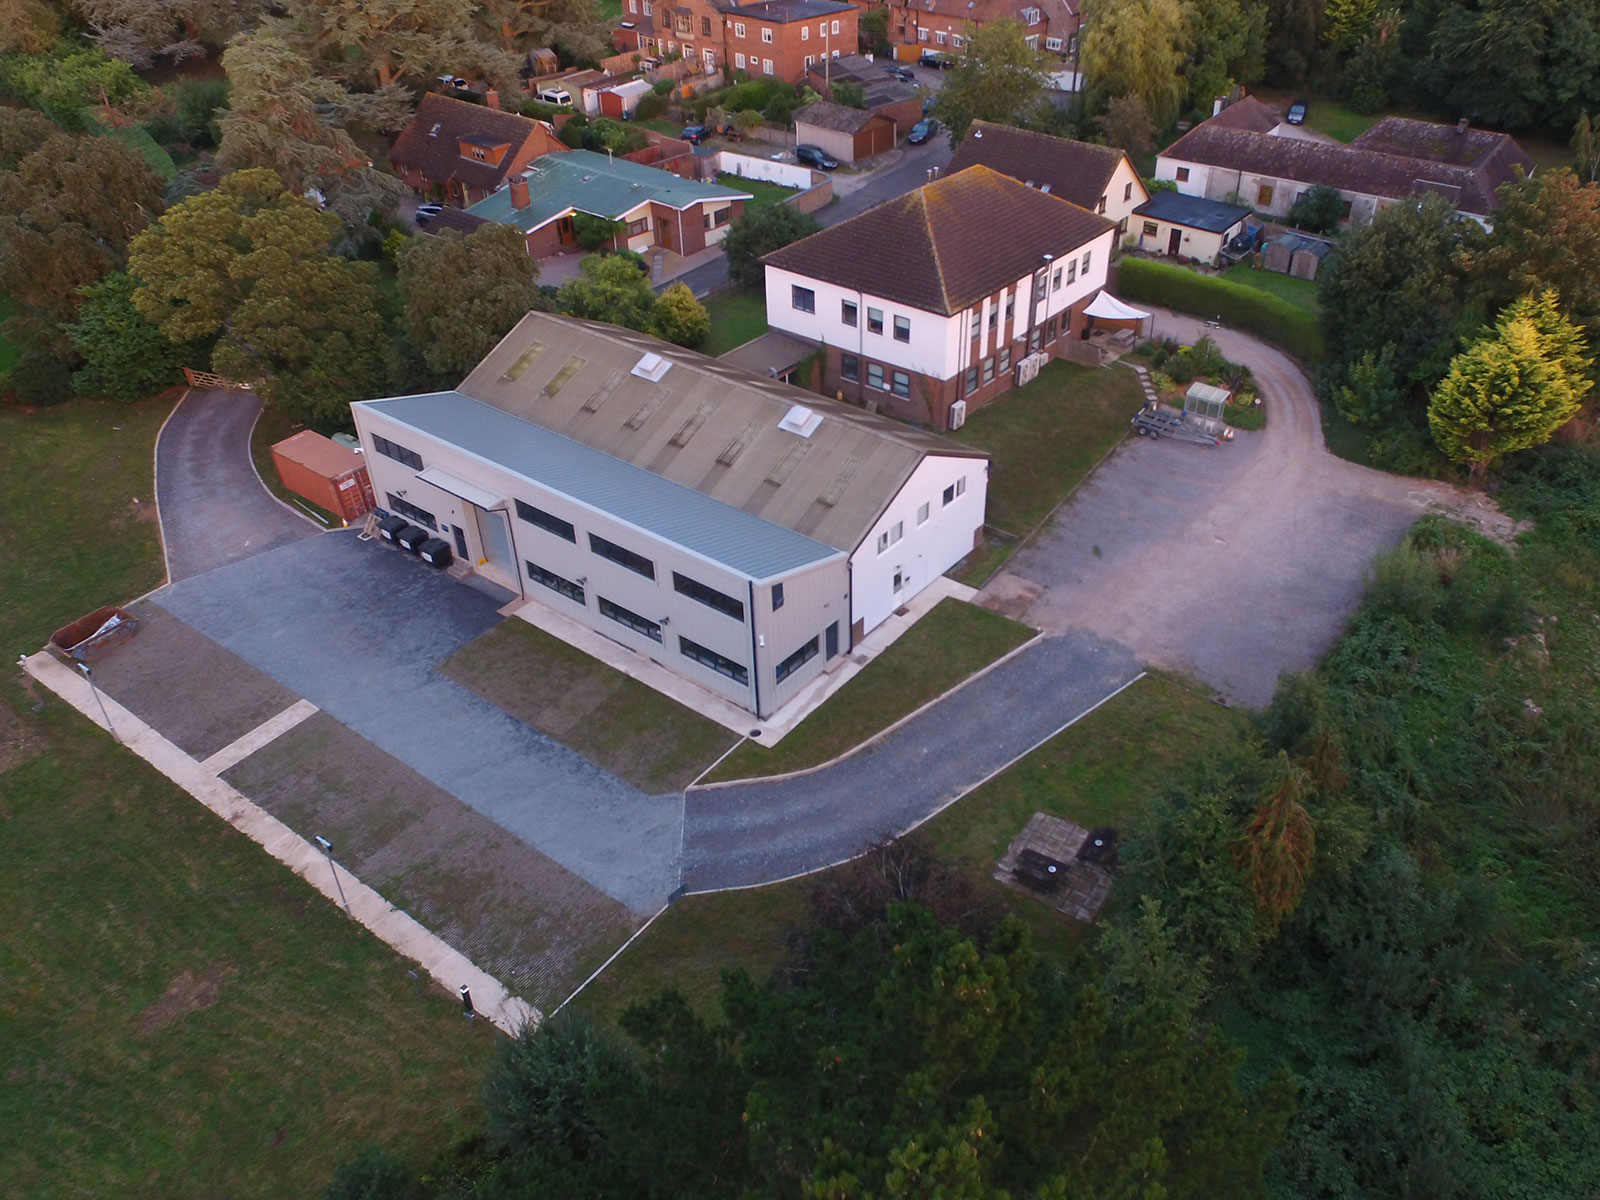 Broadweigh & Mantracourt premises drone shot